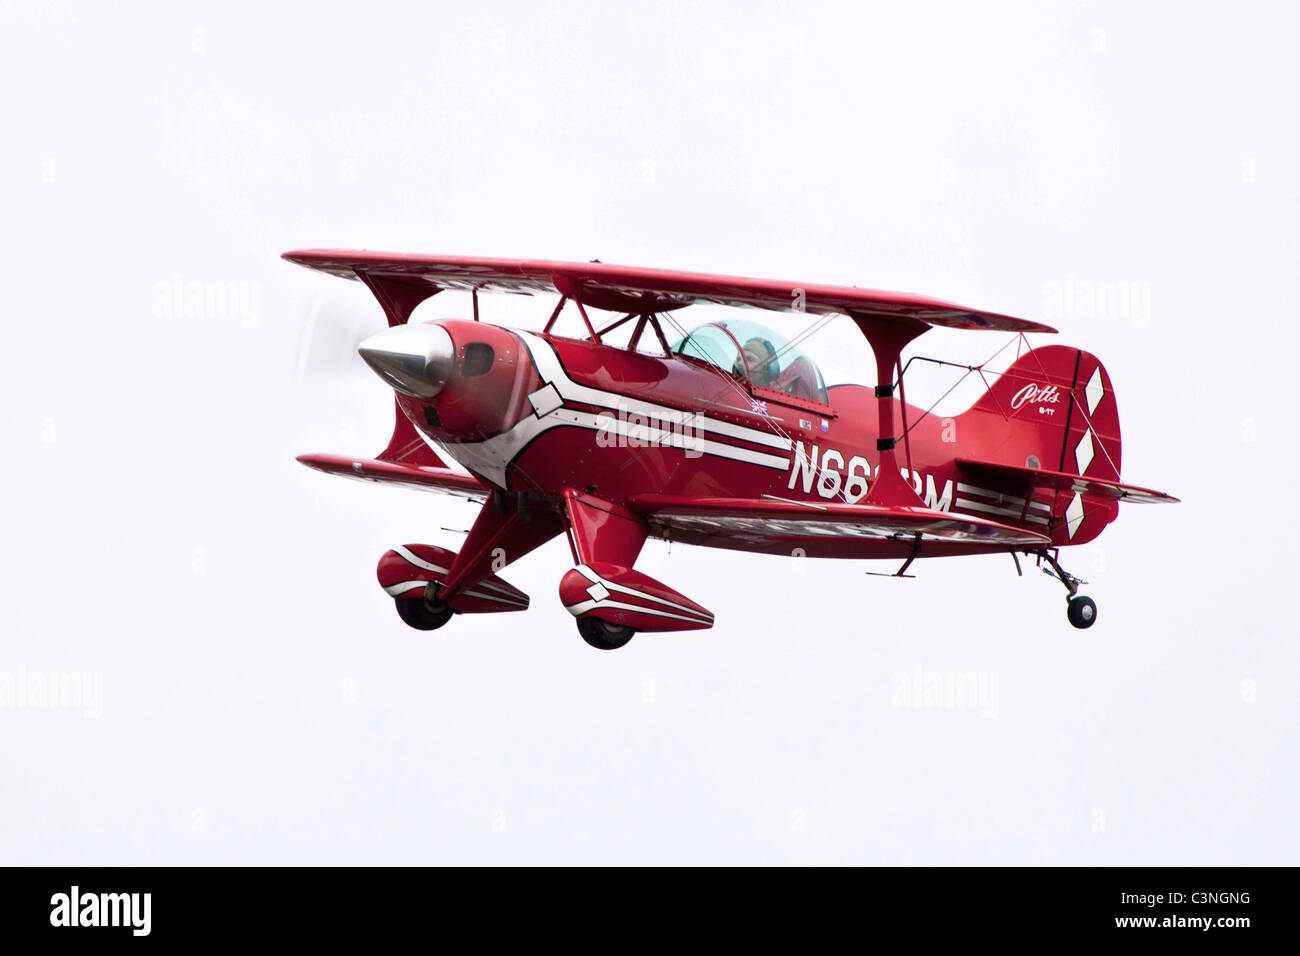 Pitts S1-T Special N666BM in flight at Sandtoft Airfield - Stock Image